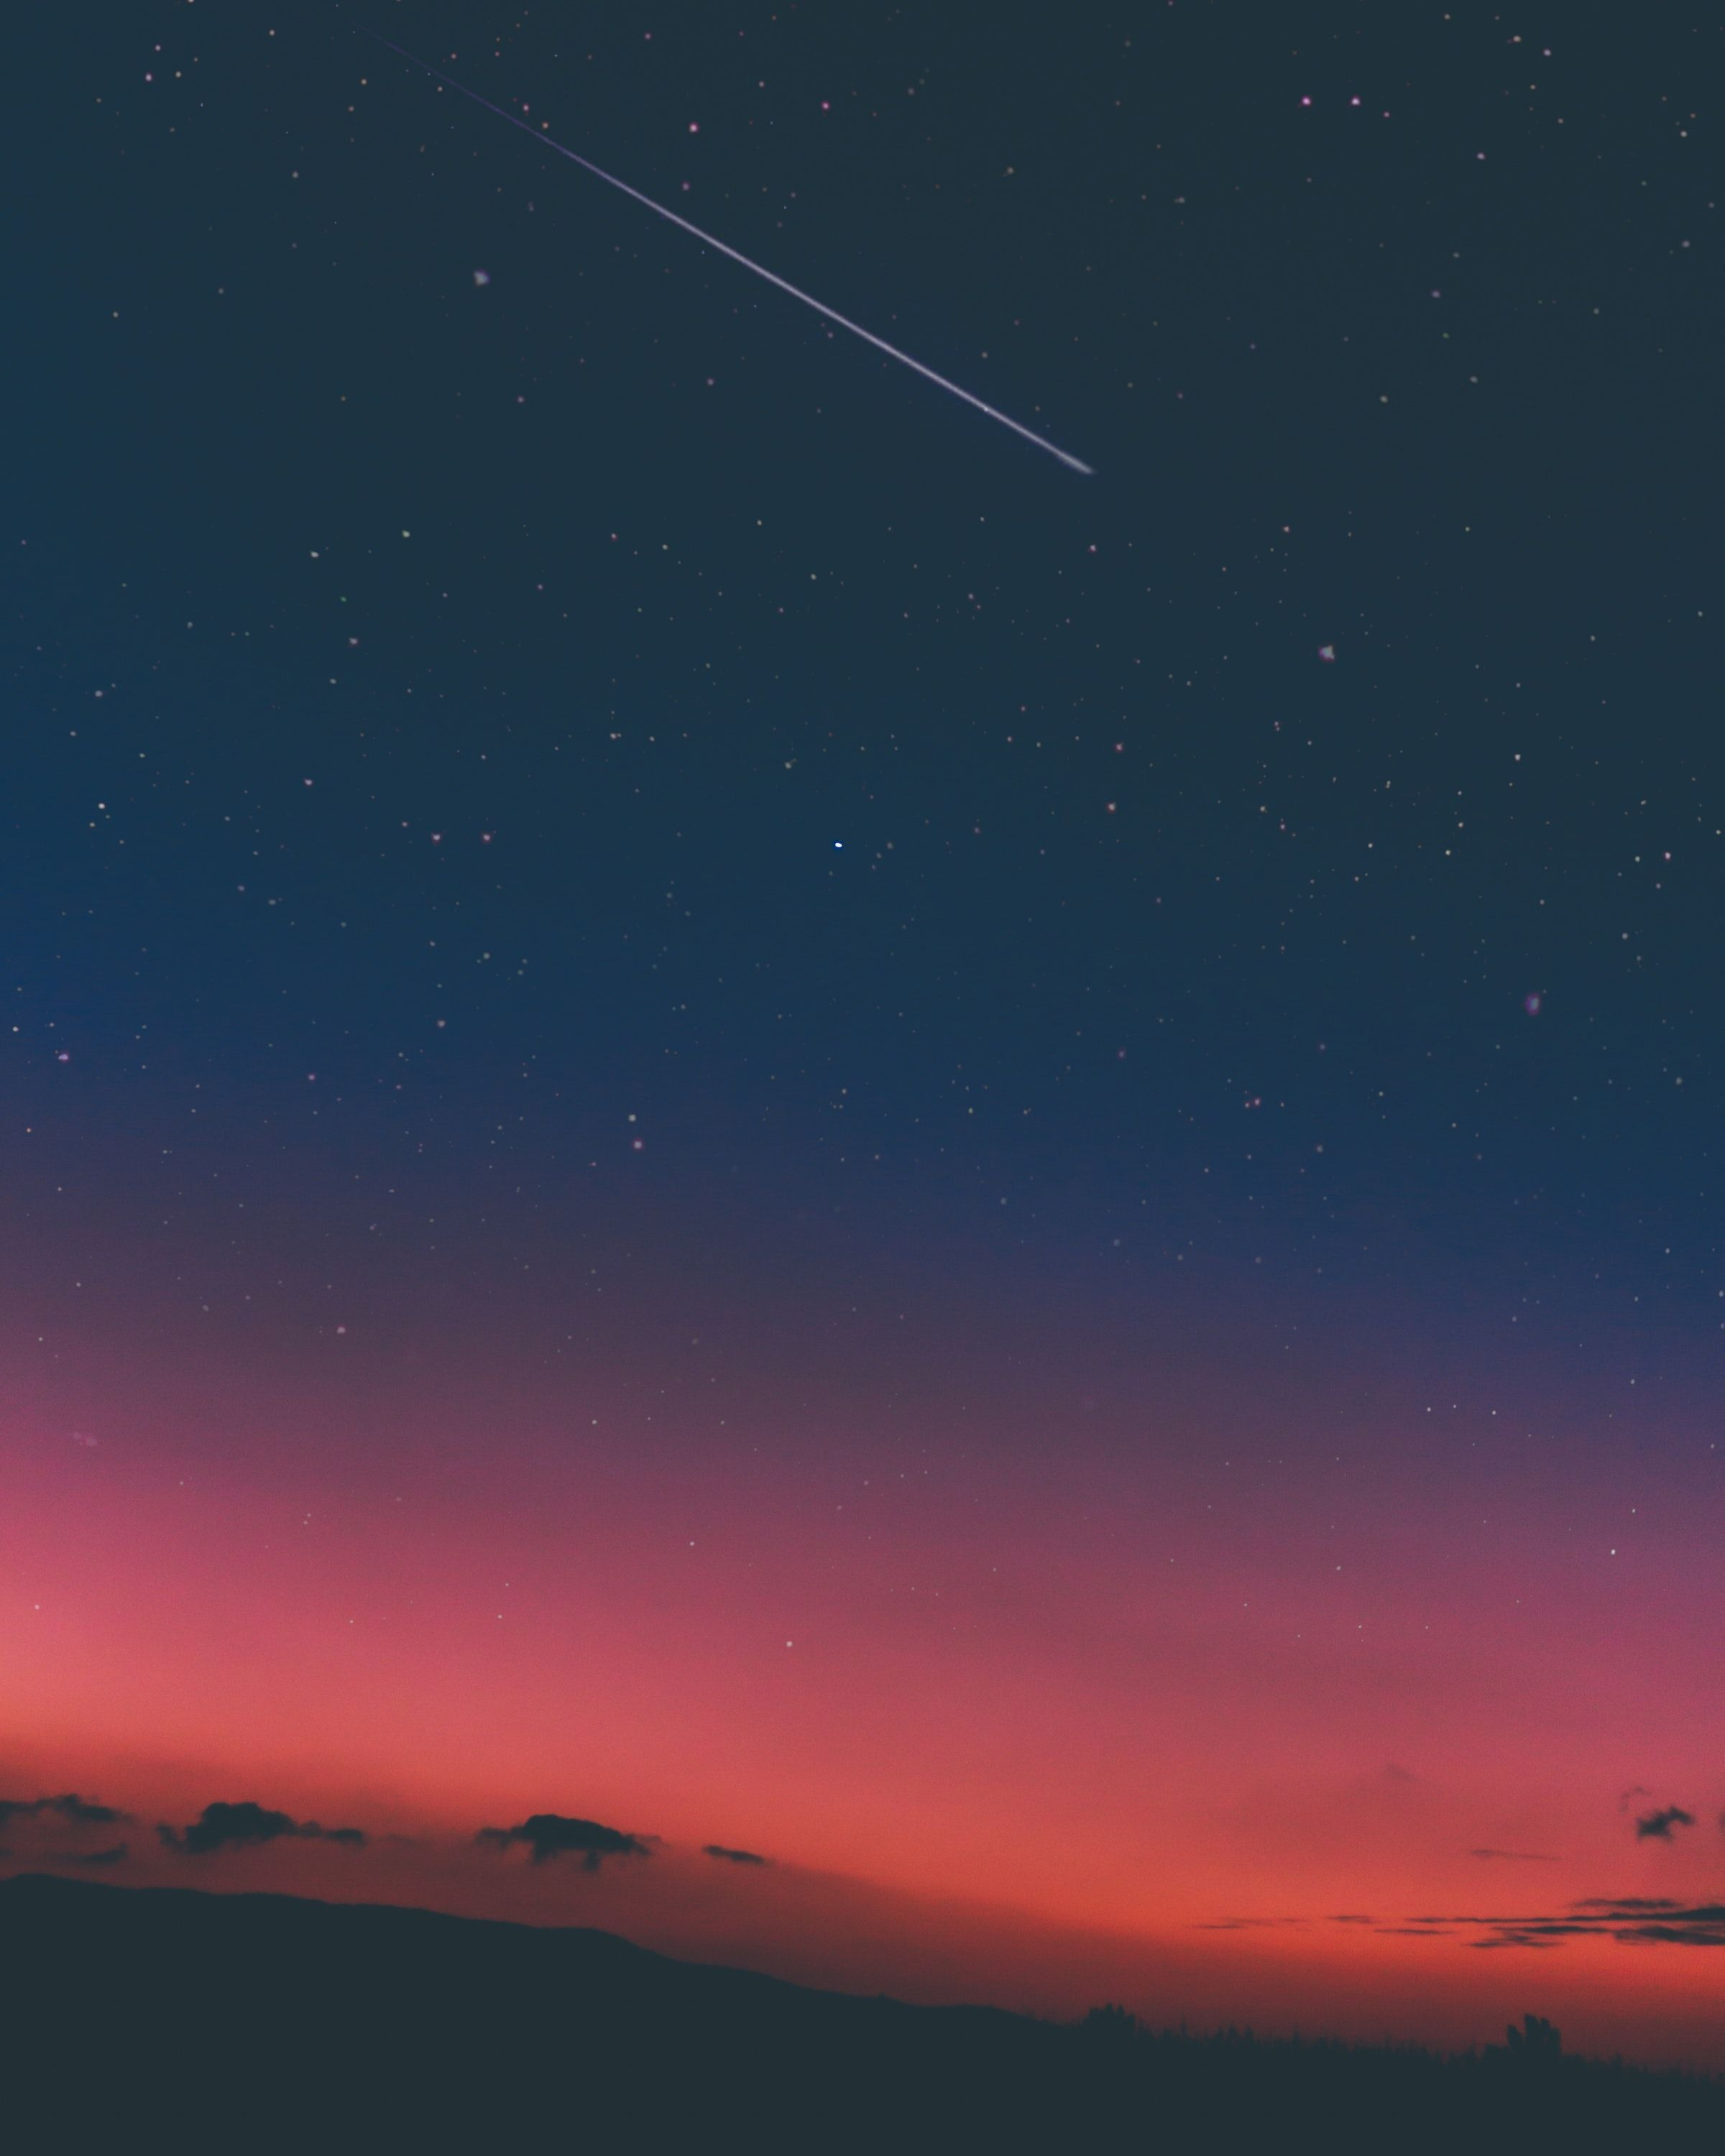 Sky star, night, shooting star, cloud, blue android